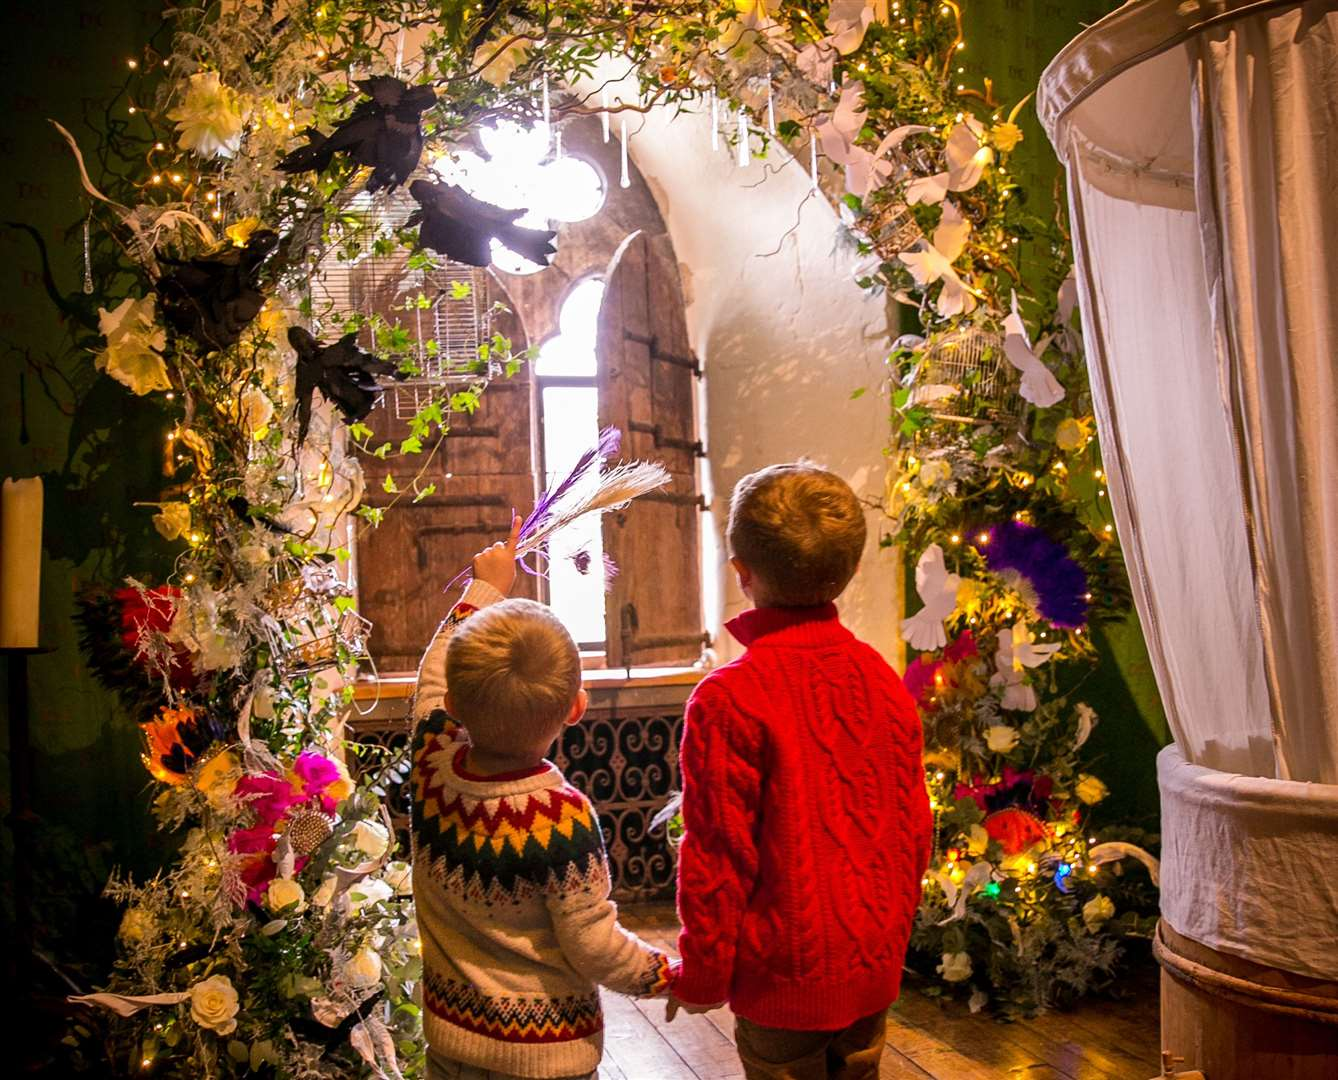 Write your Christmas dream on a feather in a room of winged wishes and experience shimmering duckling eggs ready to hatch under the tree. Picture: www.matthewwalkerphotography.com